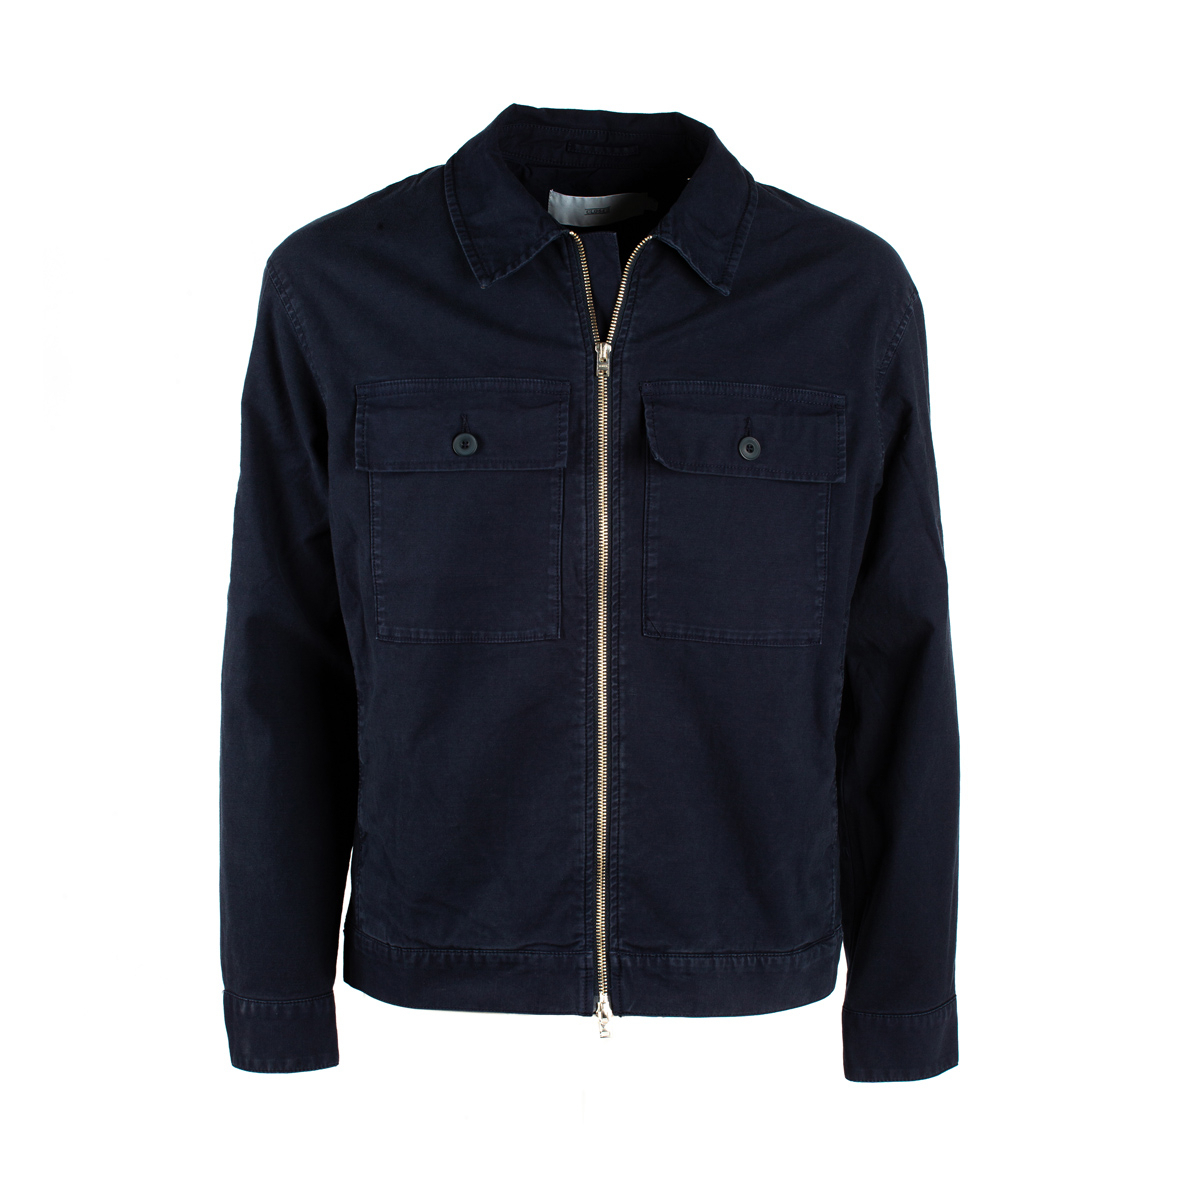 Over Jacket Closed